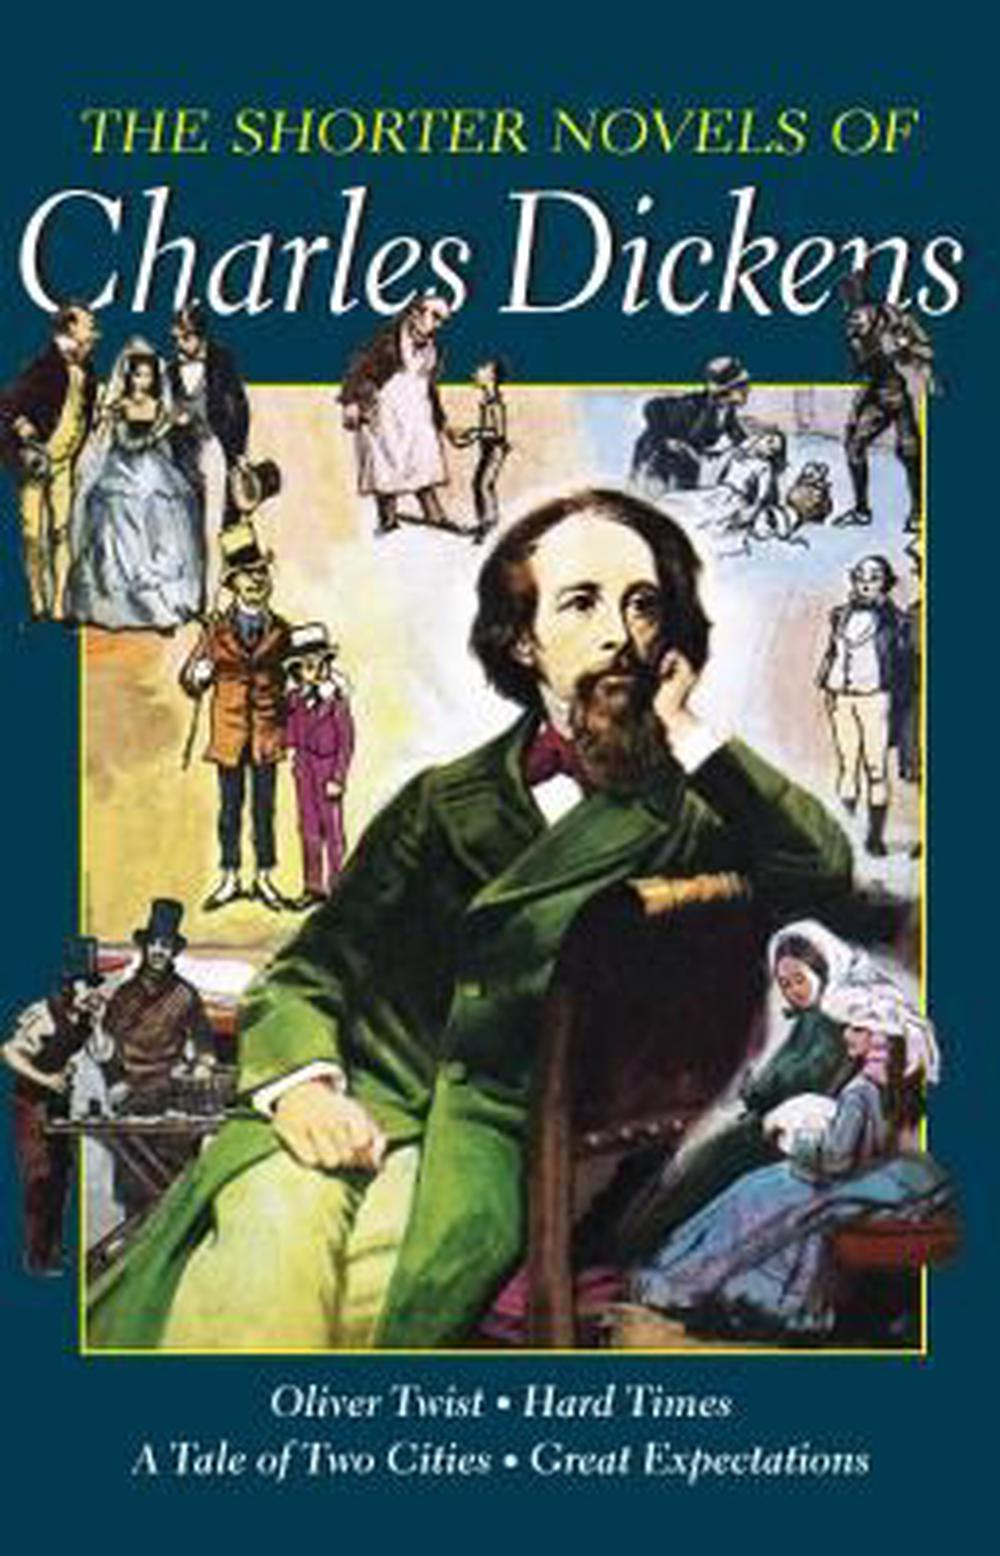 novels of charles dickens Project gutenberg offers 56,951 free ebooks for kindle, ipad, nook, android, and iphone.